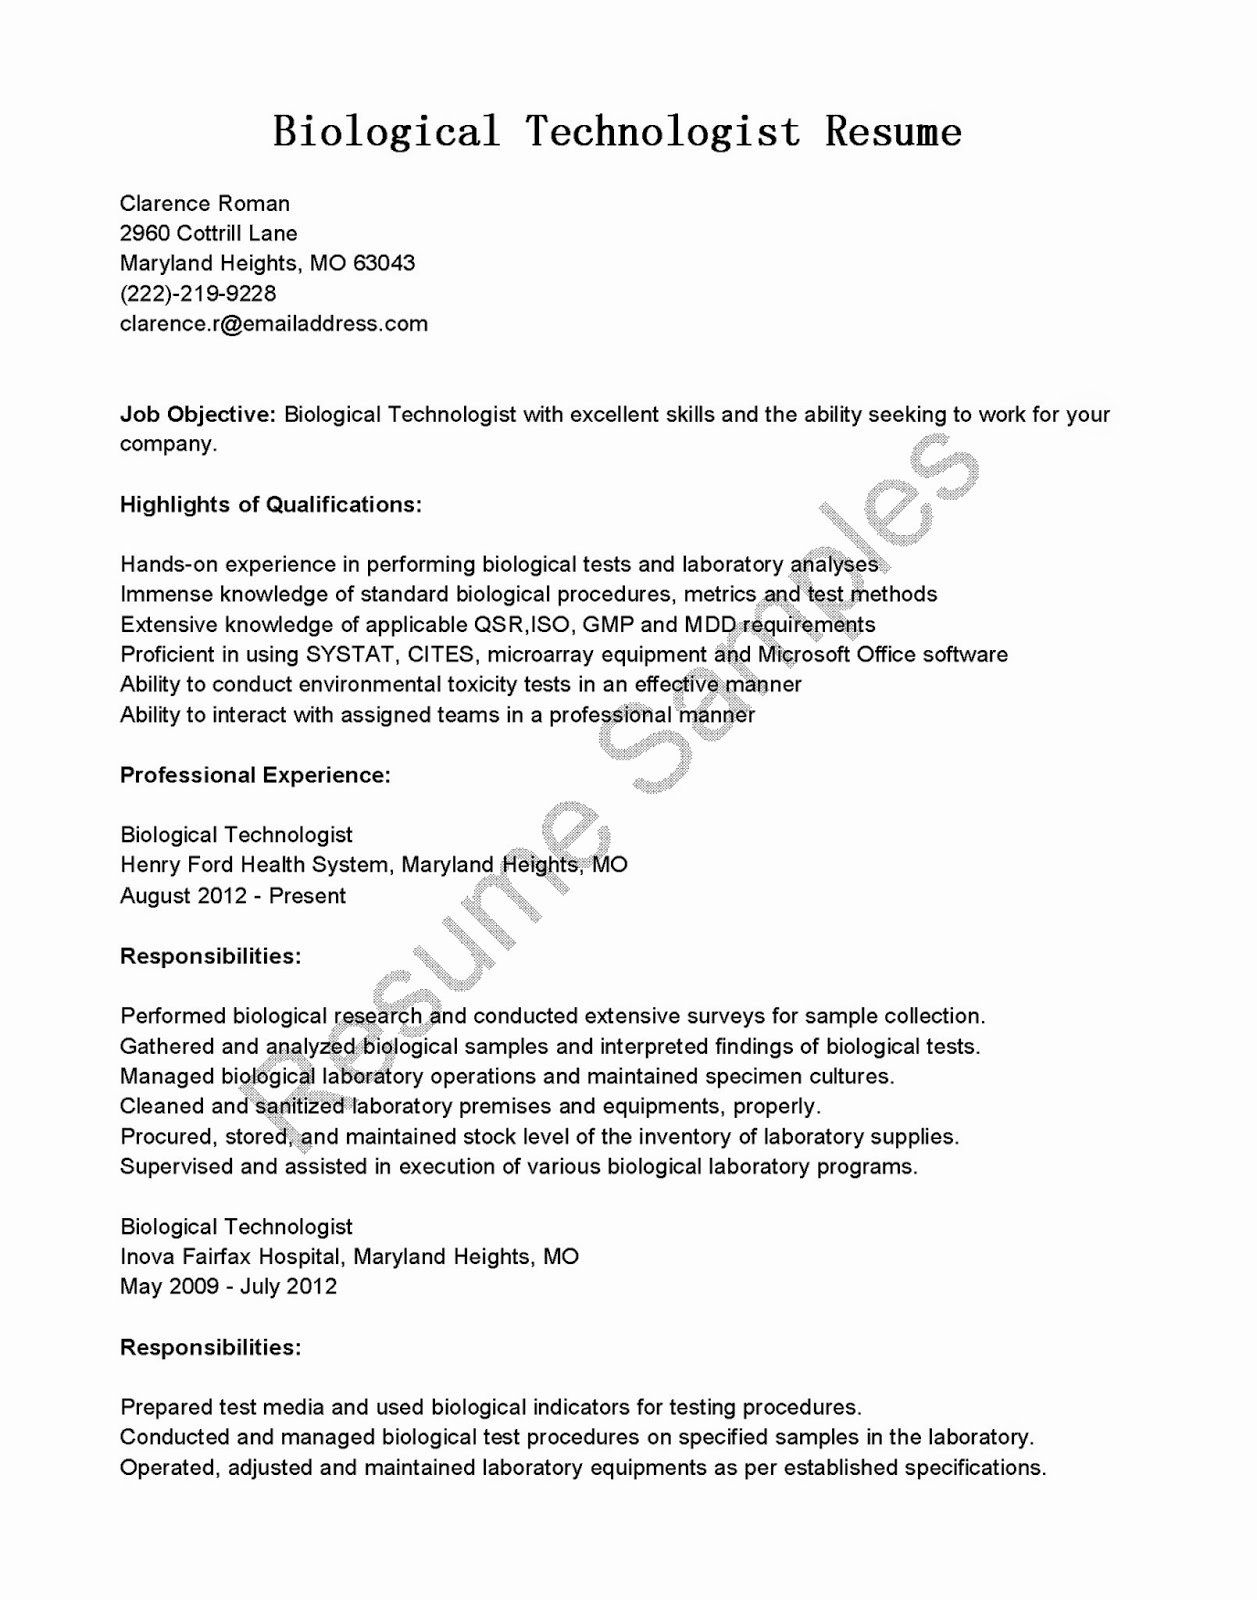 Environmental Services Job Description Resume Inspirational How To Write Research Paper Guide To Writing Researc Service Jobs Job Description Informative Essay